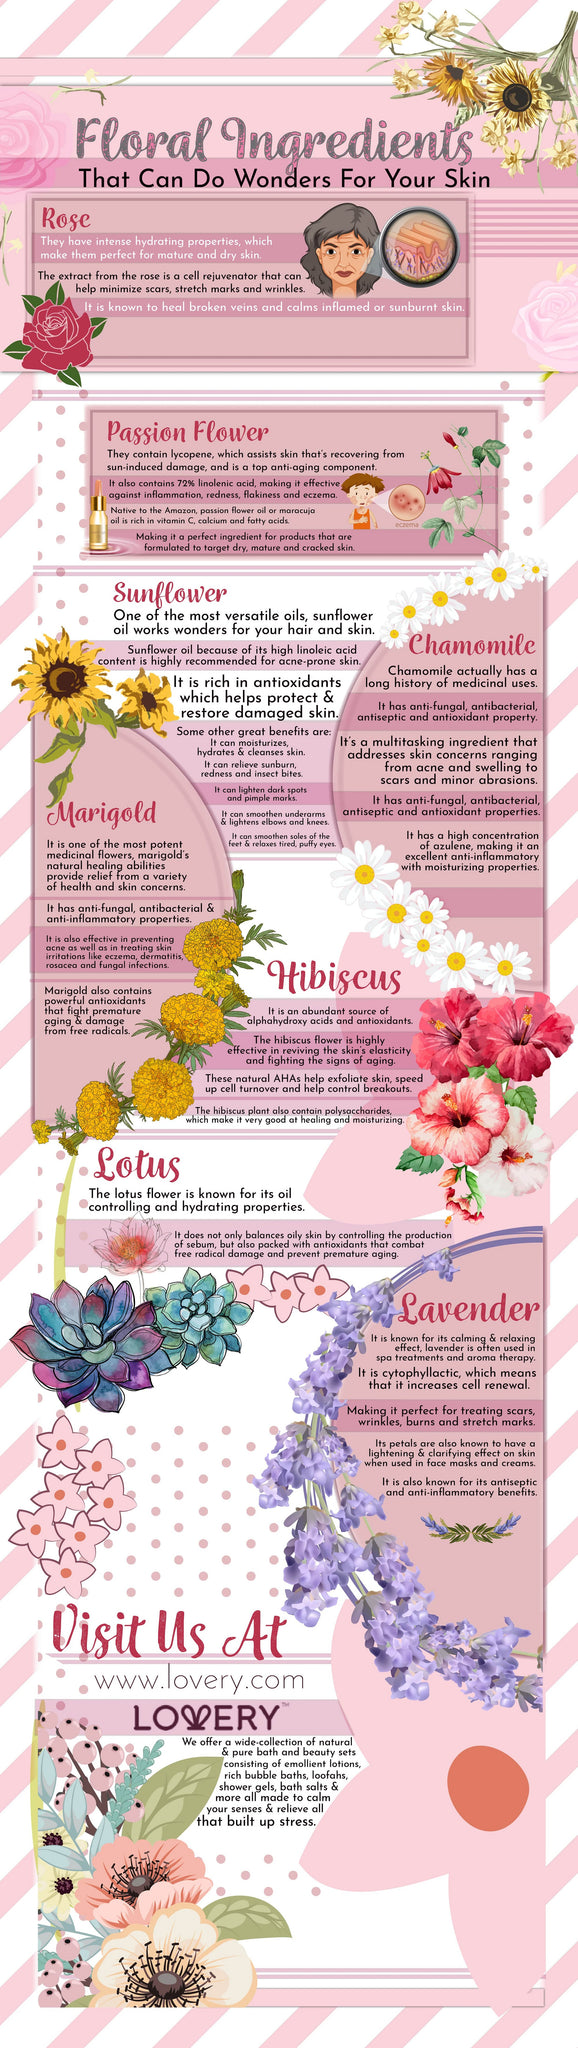 Floral ingredients that can do wonders for your skin